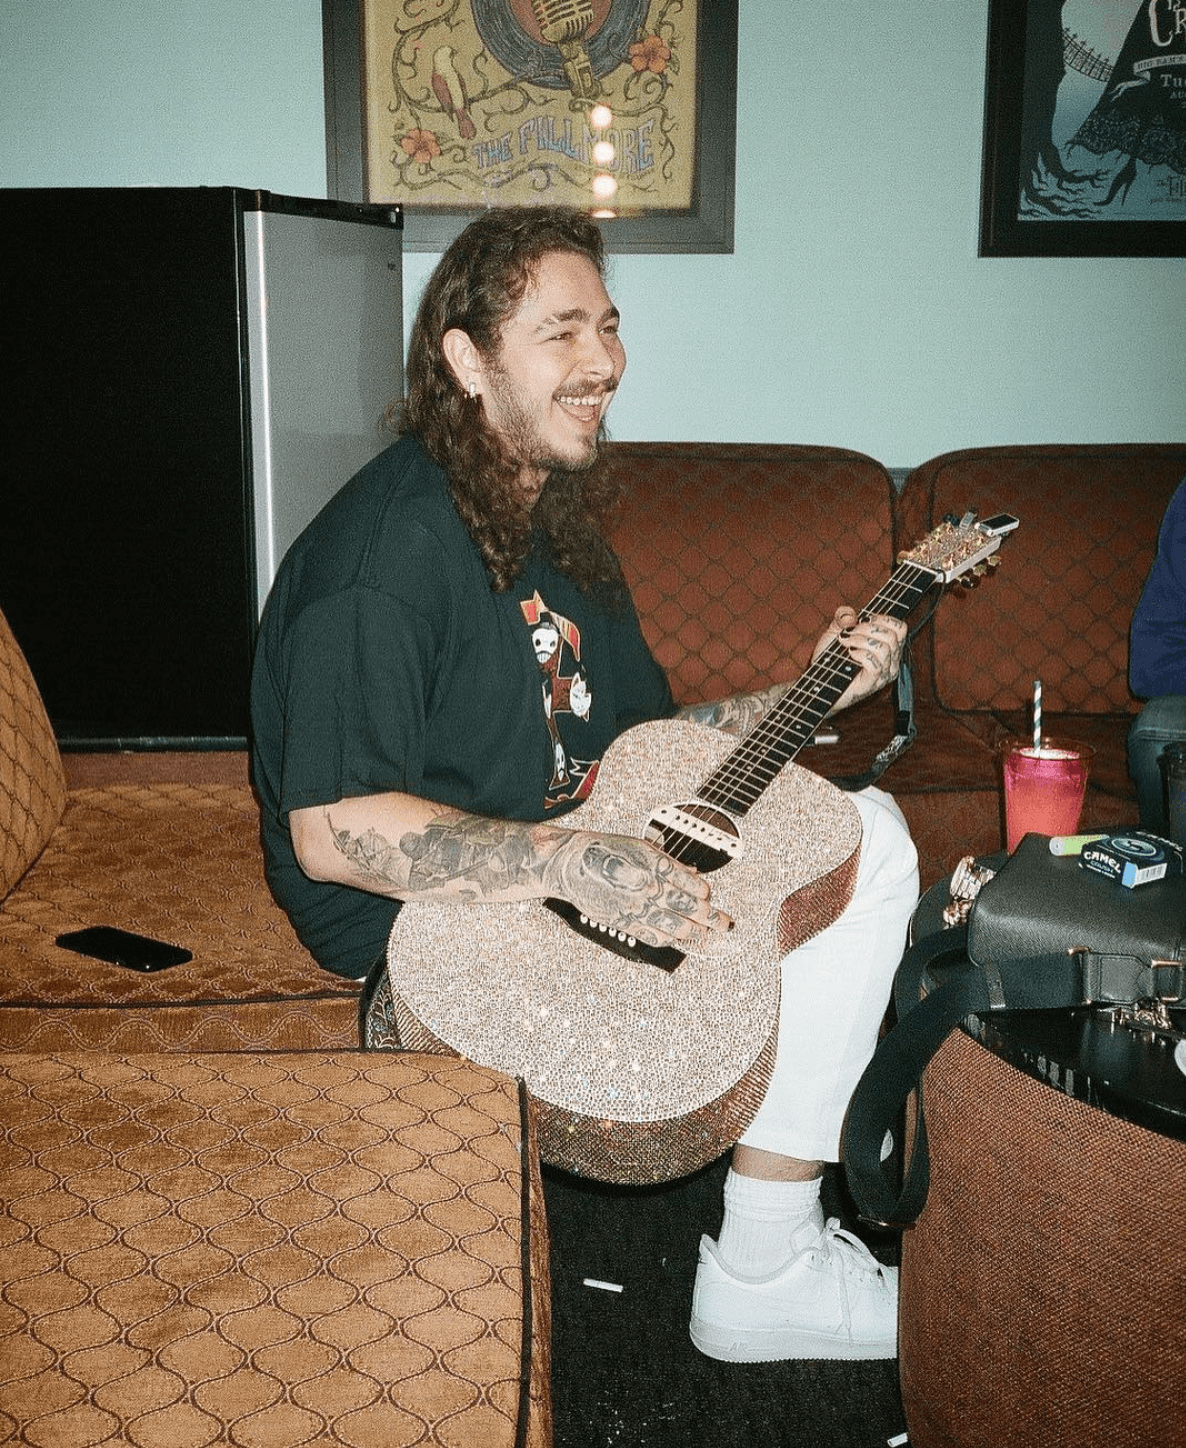 Post Malone in the Nike Air Force 1 Low